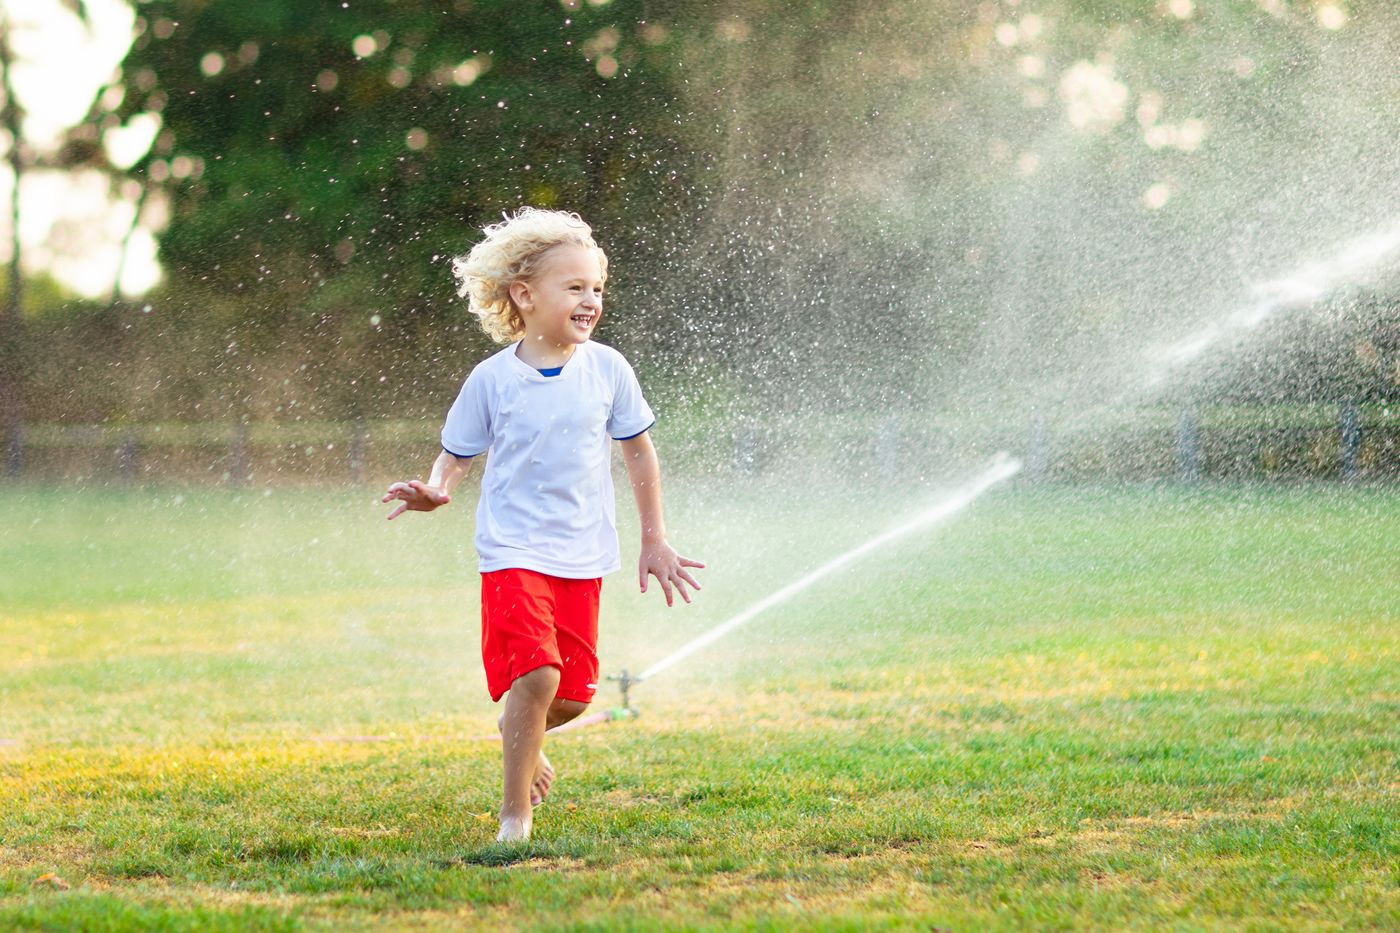 sprinkler photo.jpg